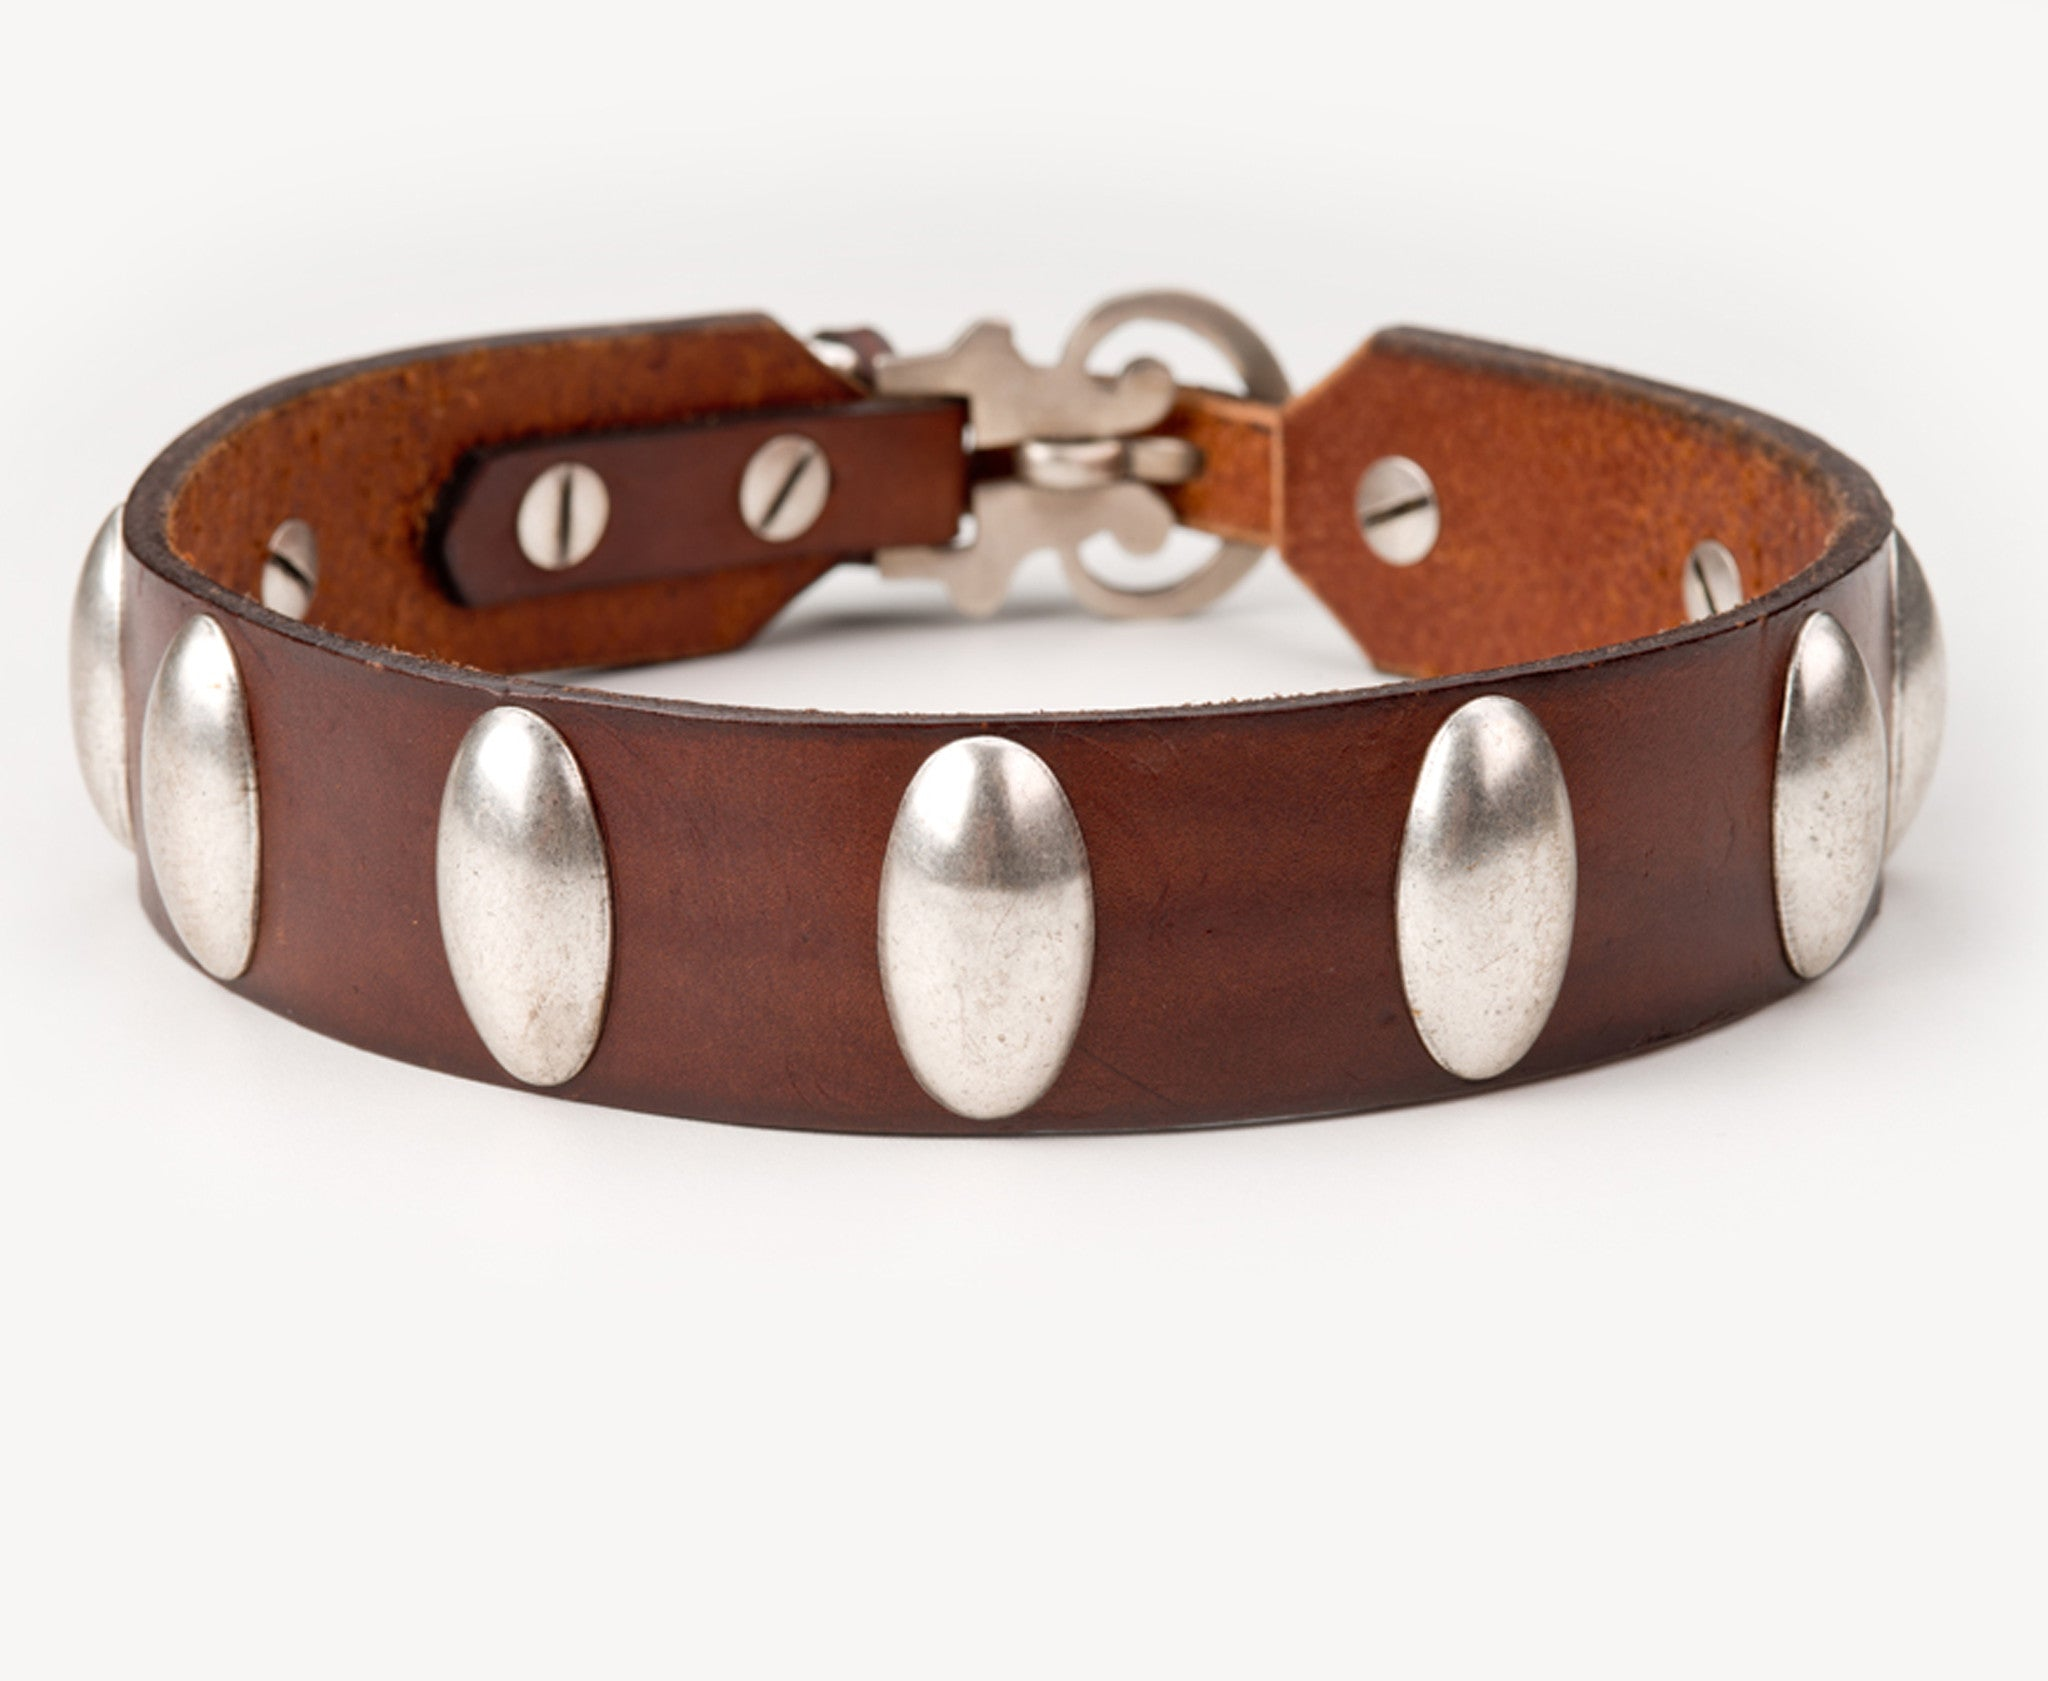 Collier Leeds Gordon leather dog collar